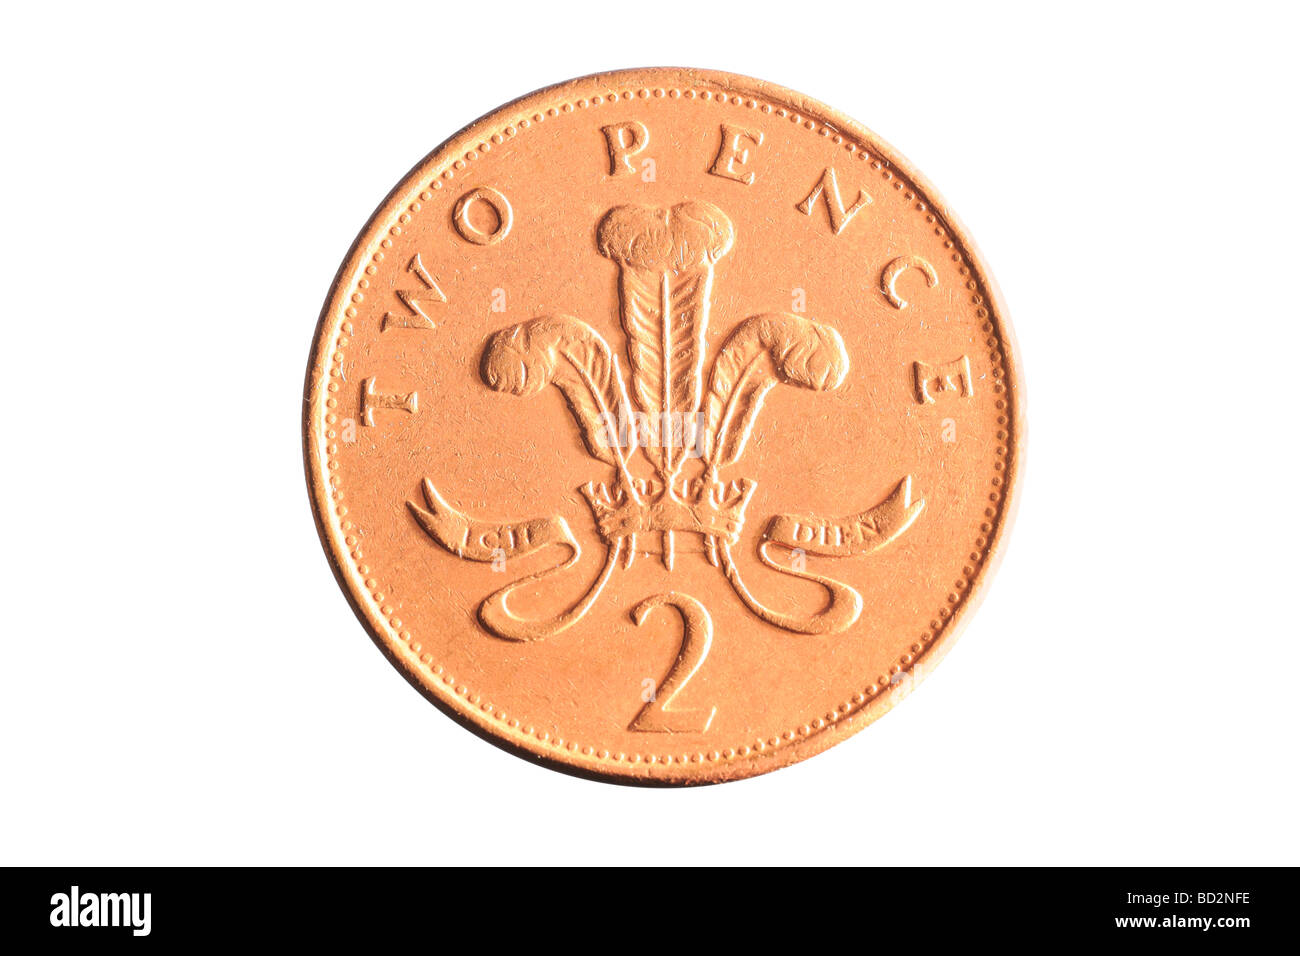 Two pence coin - Stock Image